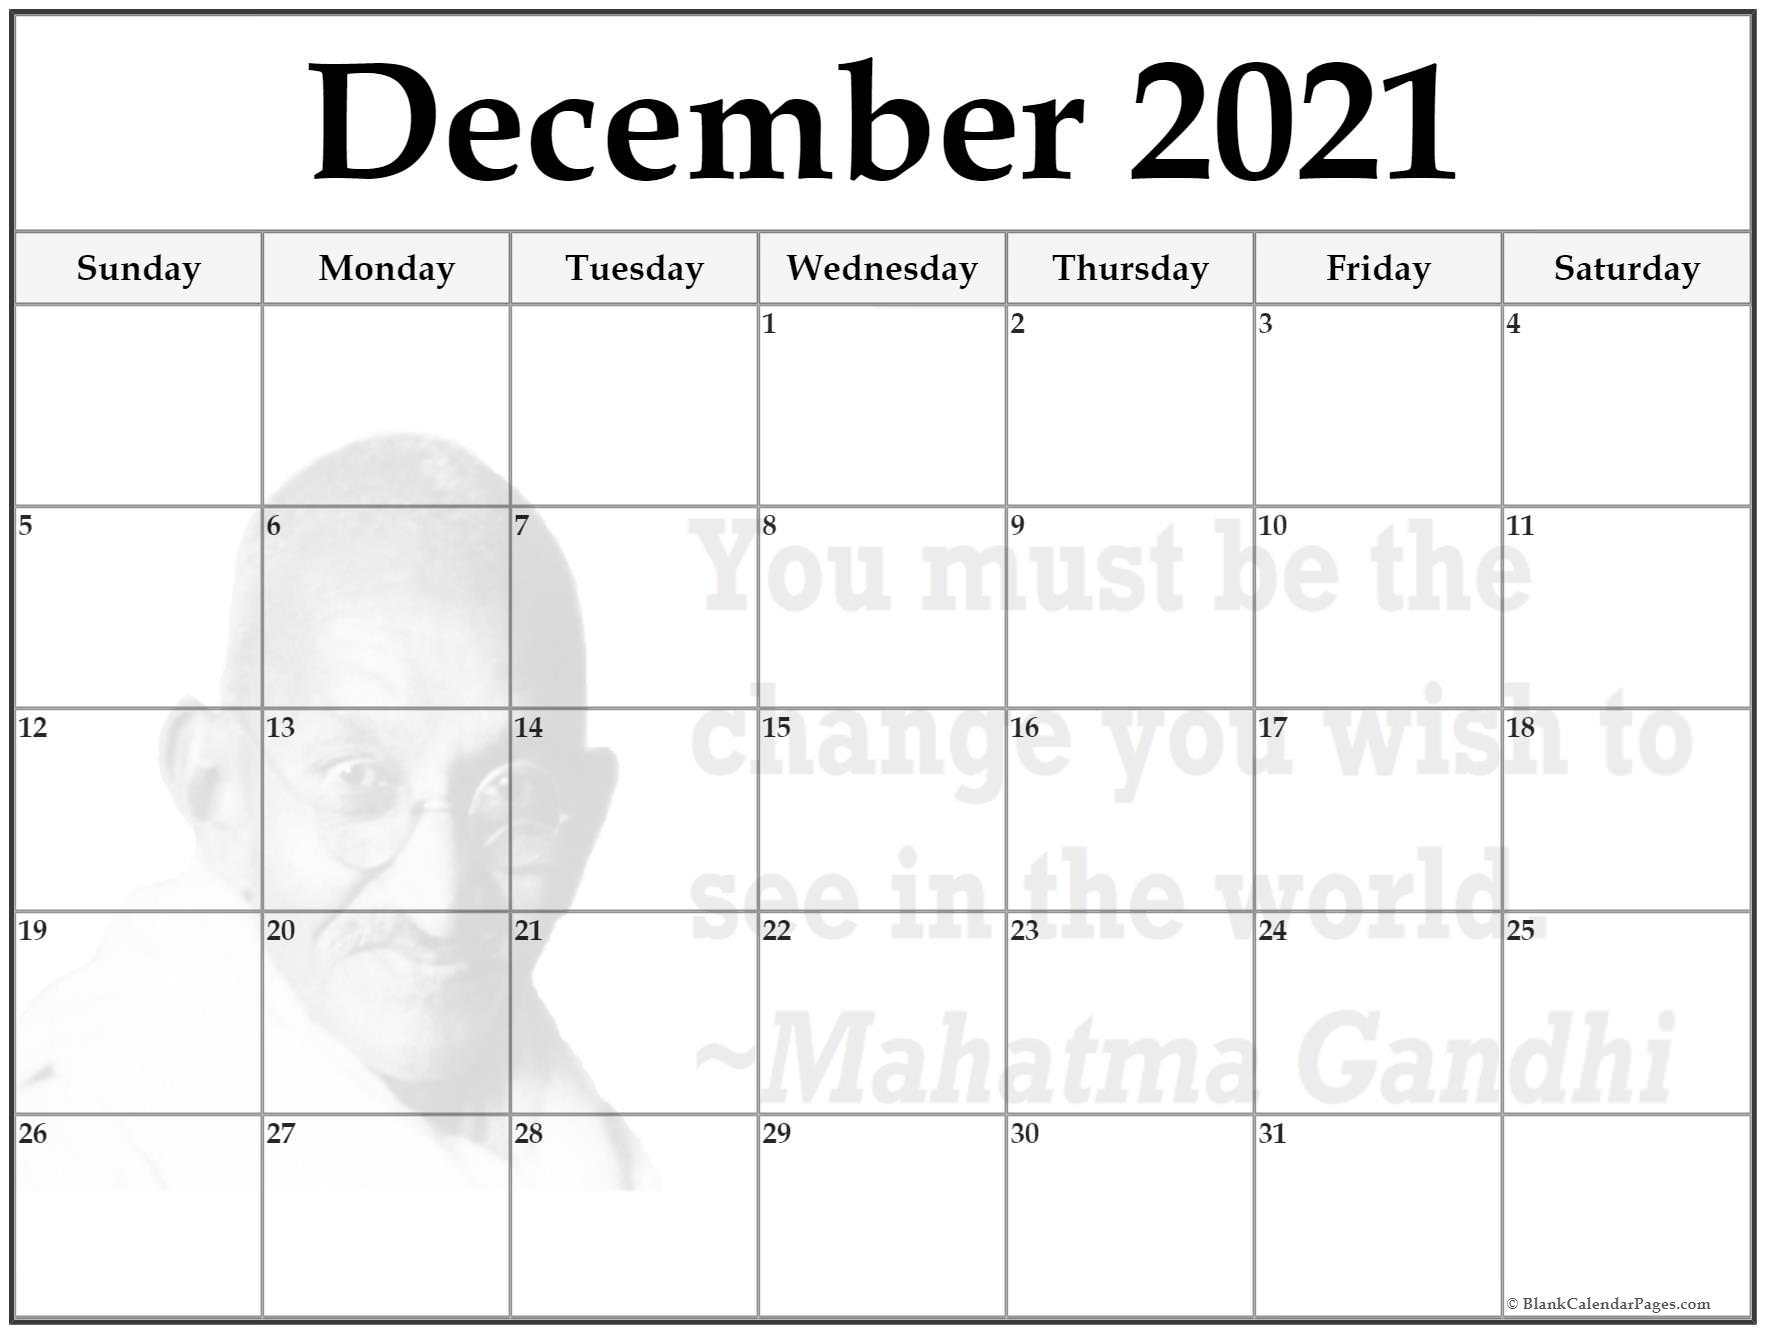 December 2019 monthly calendar template. You must be the change you wish to see in the world. ~Mahatma Gandhi